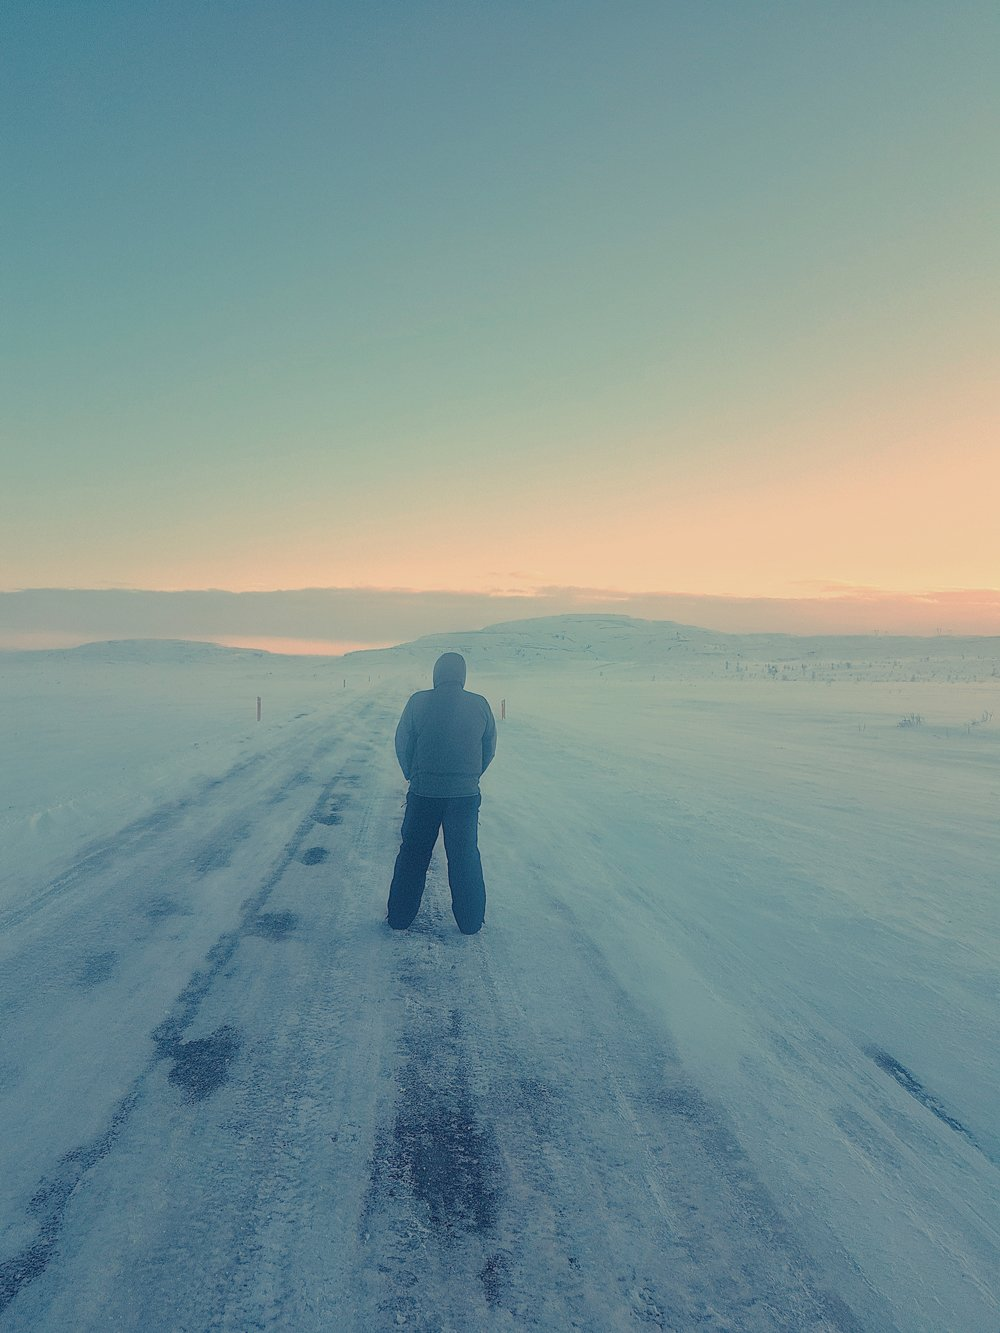 Iceland. snow. travel. adventure. photography. trip. epic landscape. snow. cold. freezing. sunrise. lonly path.jpg